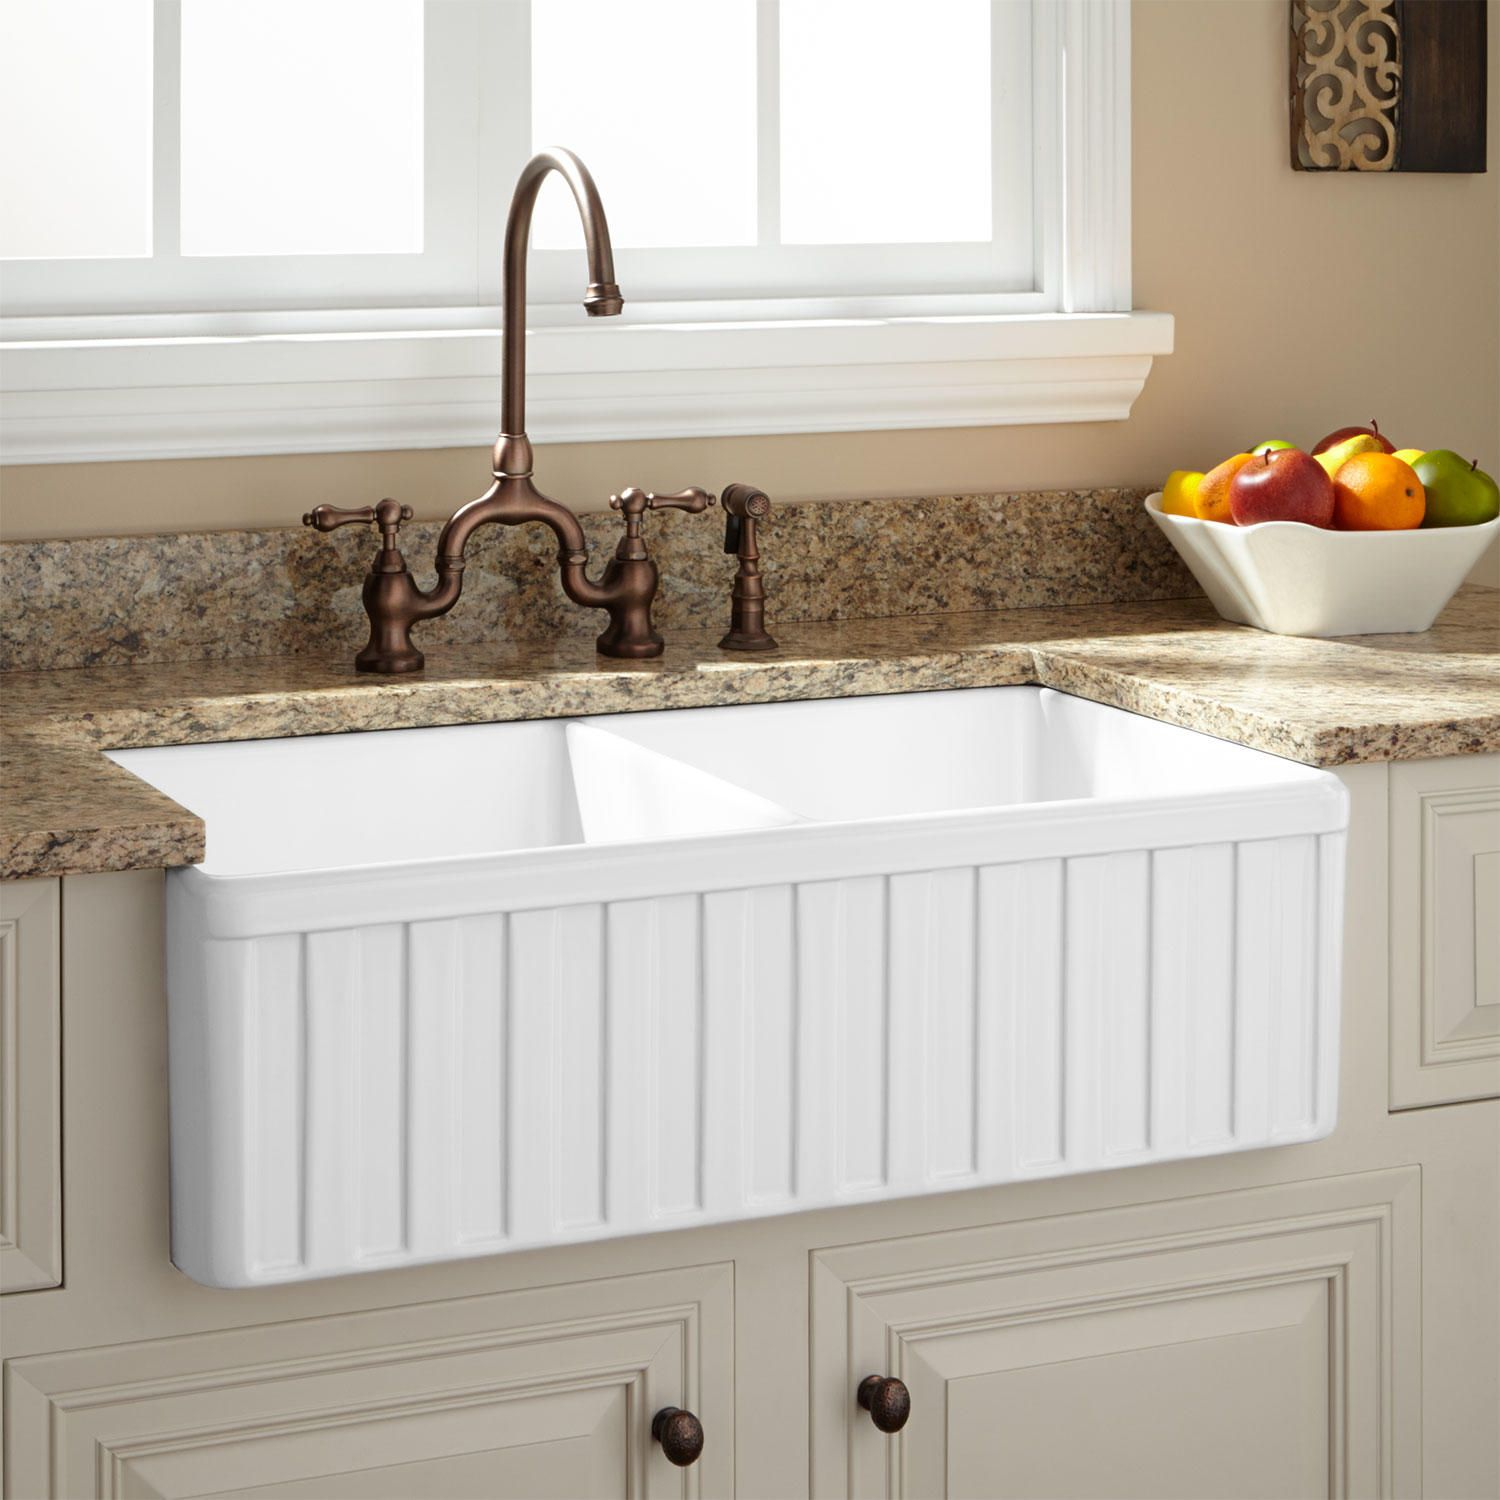 33 Oldham Double Bowl Fireclay Farmhouse Sink W Board And Batten Front White Fireclay Farmhouse Sink Farmhouse Sink Antique Farmhouse Sink